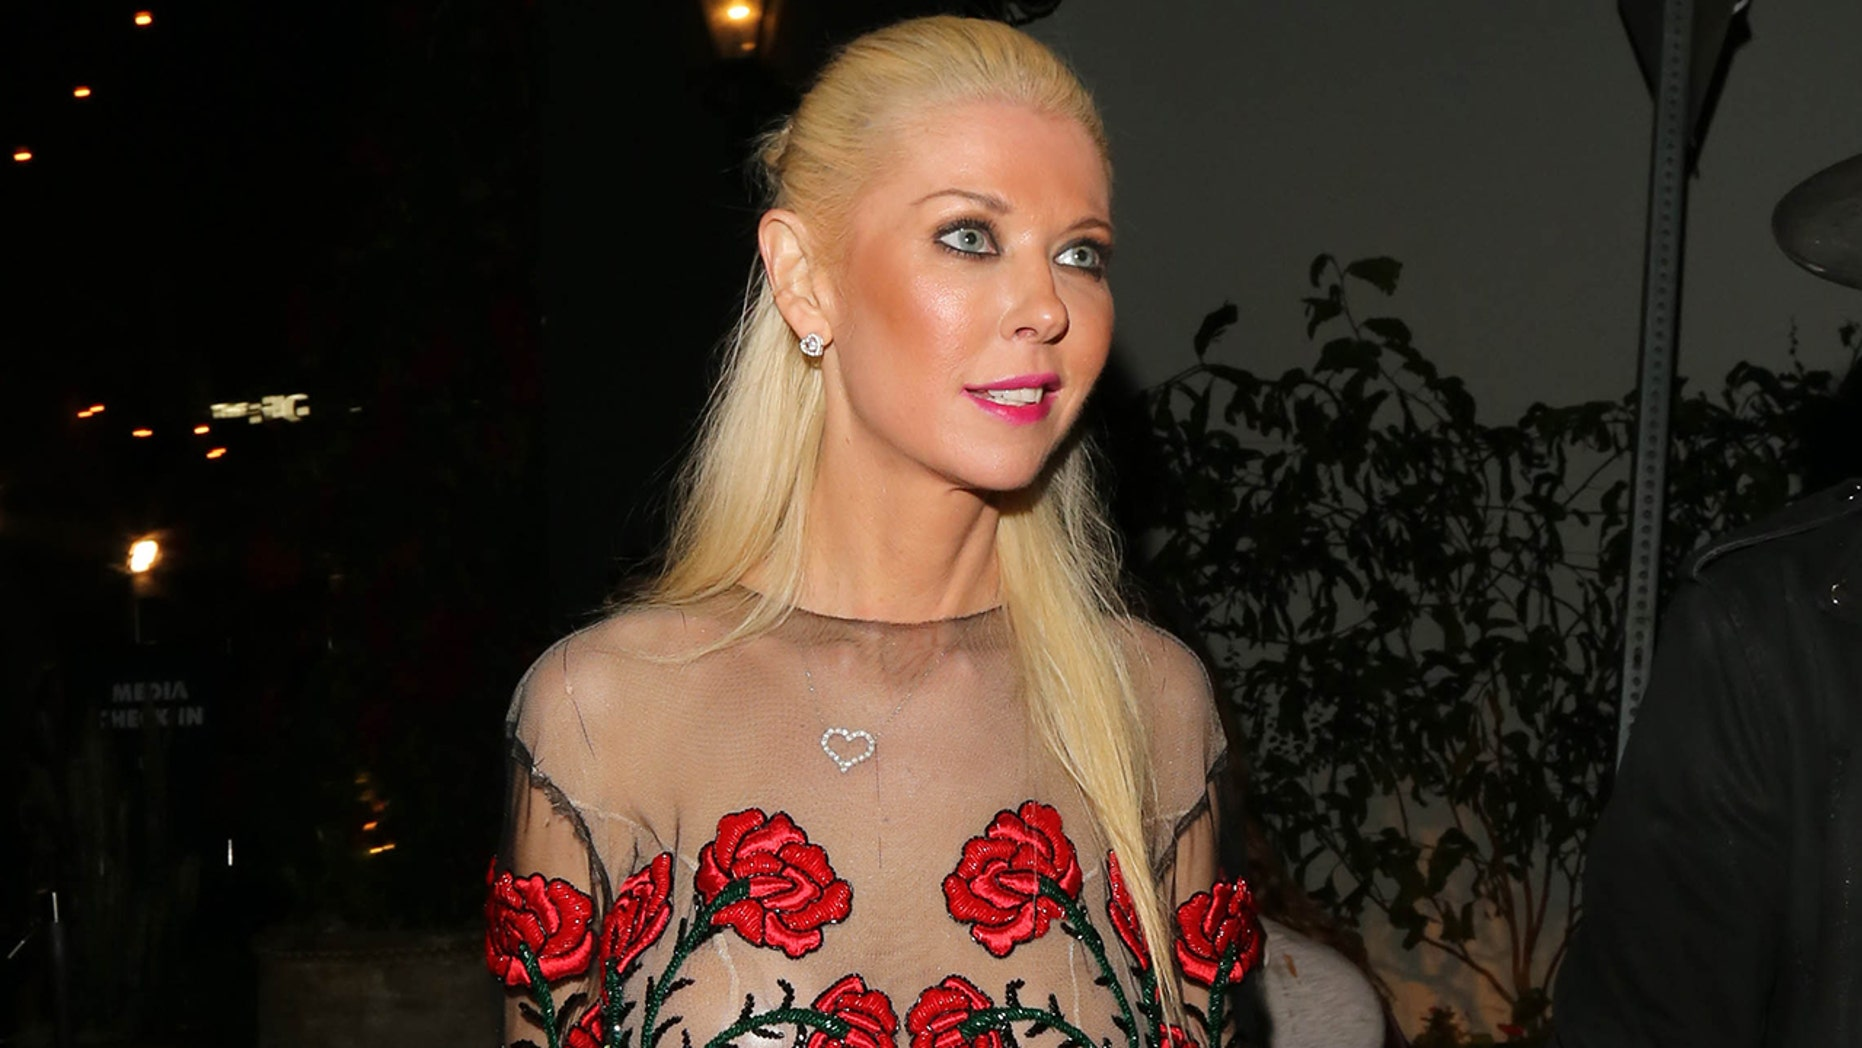 Tara Reid revealed that her mother died over the weekend.